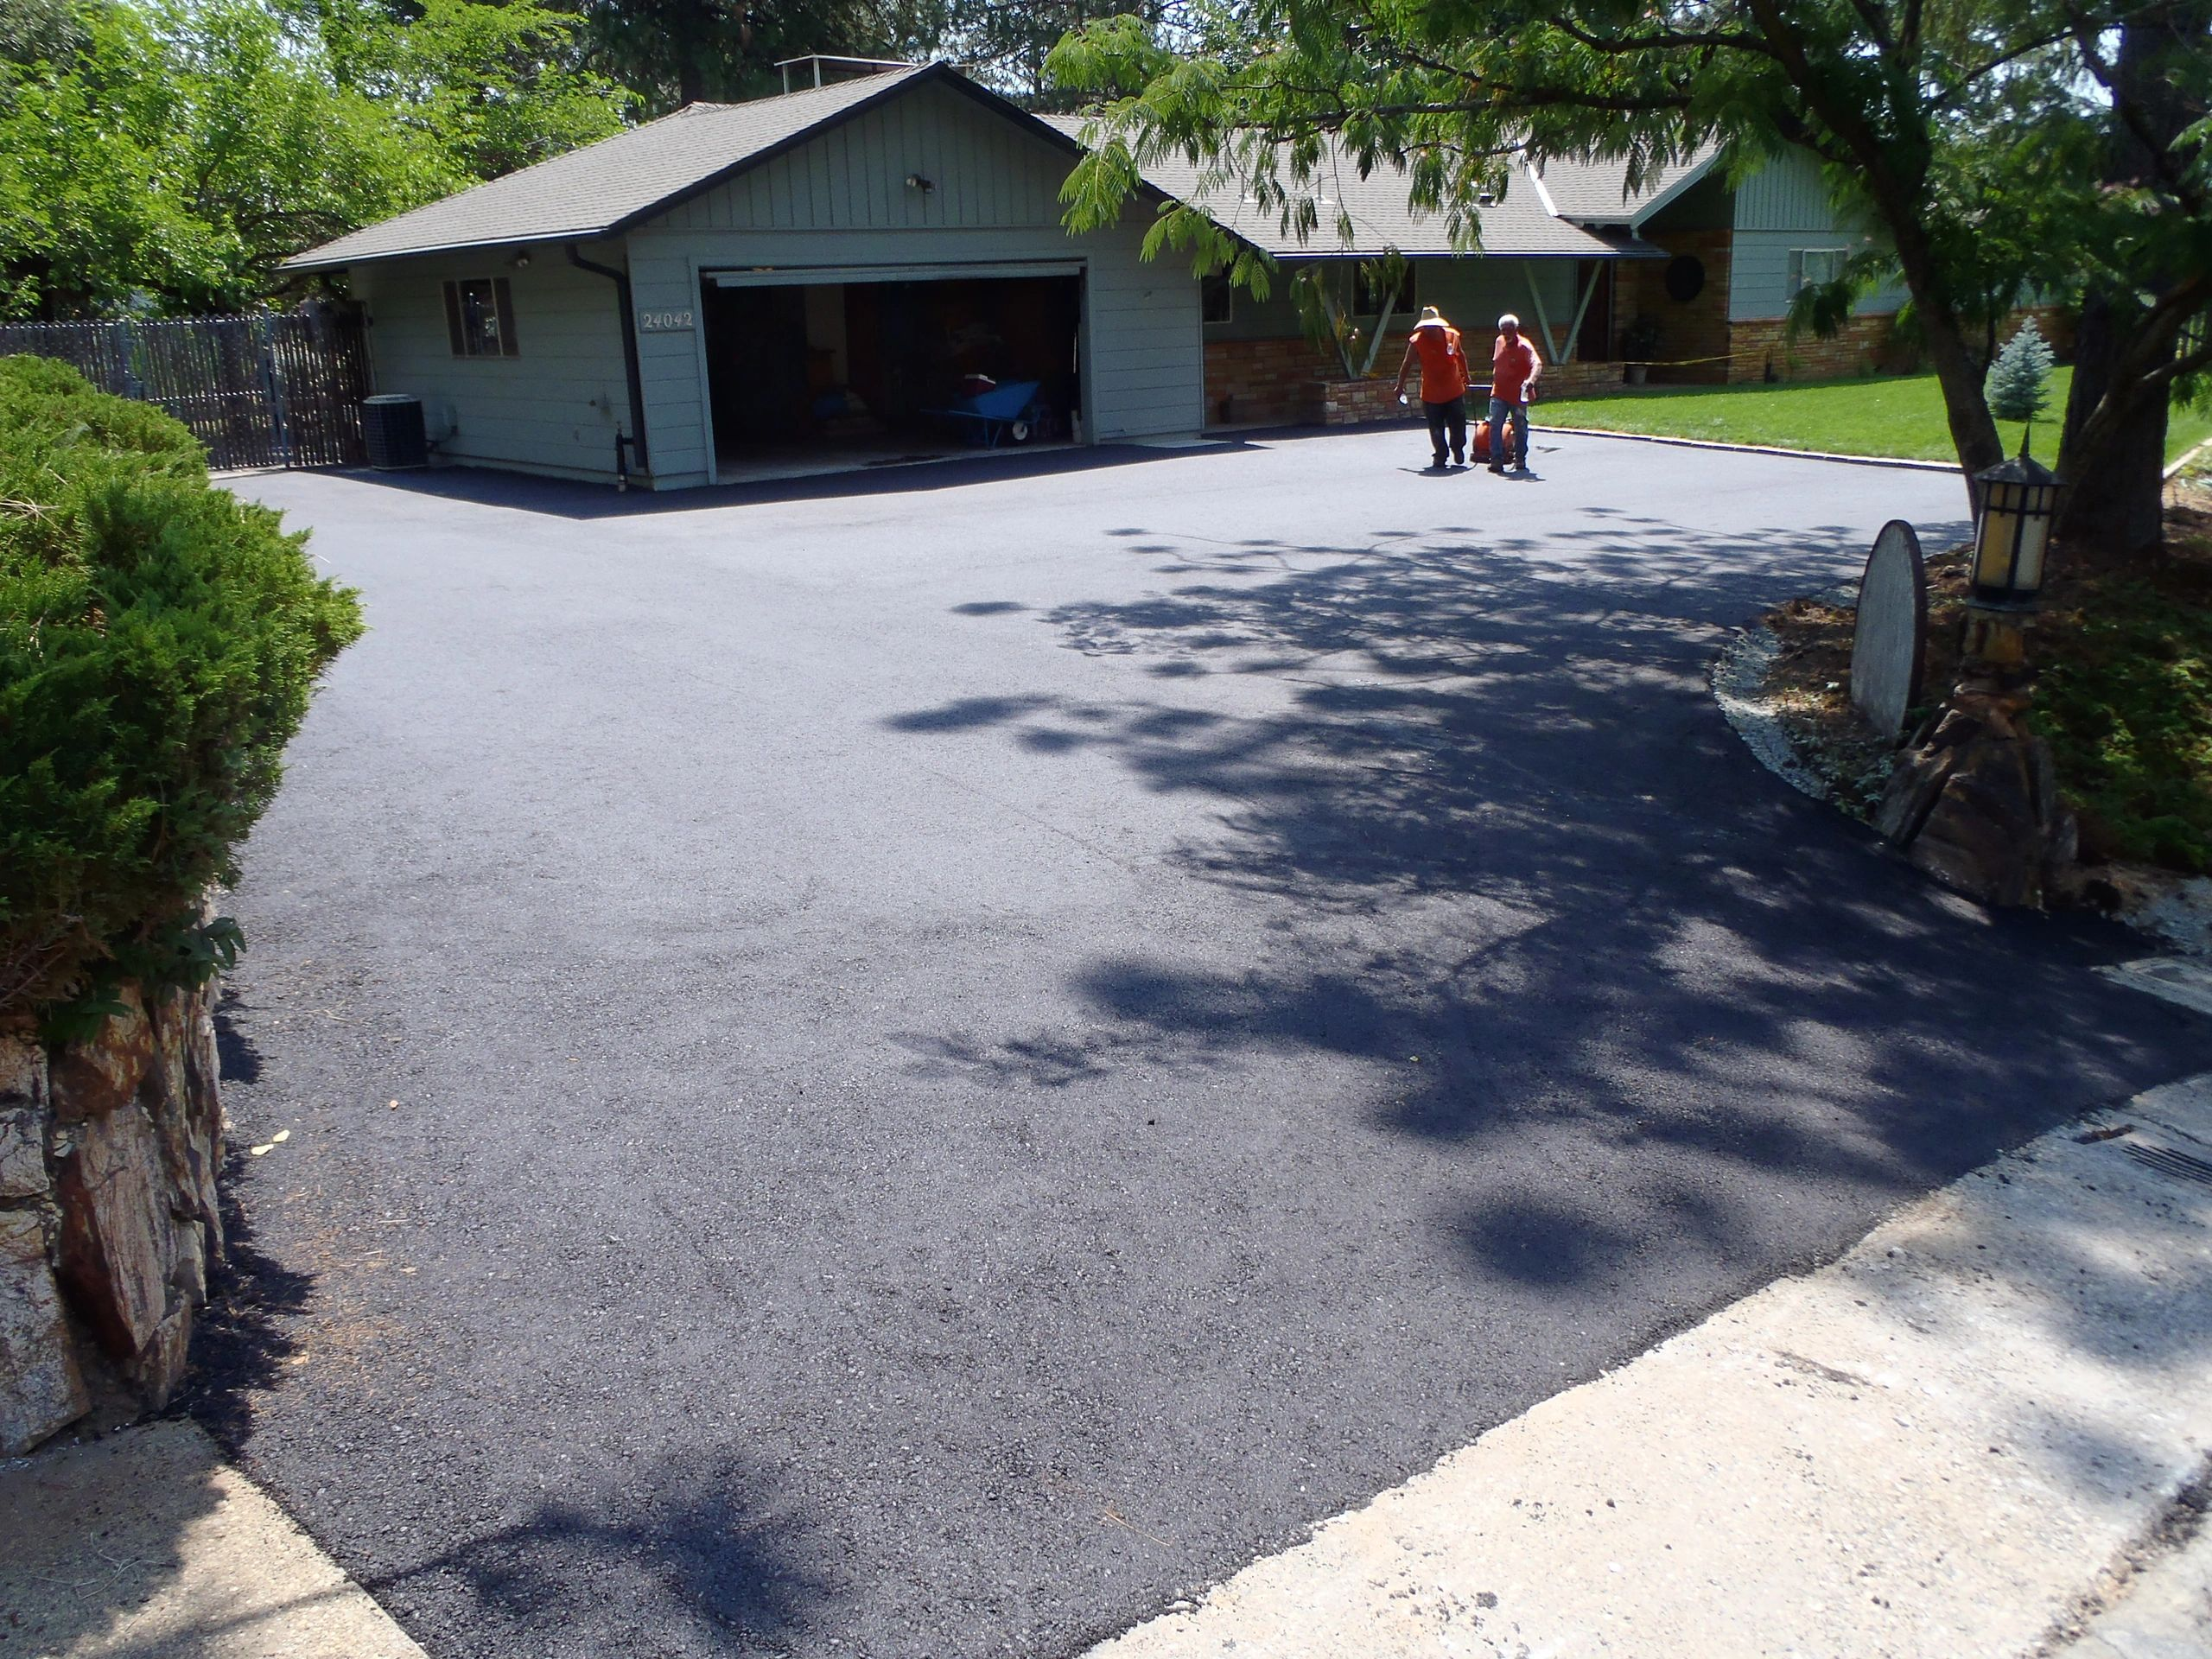 Newly paved asphalt driveway with two crew members and house in the distance